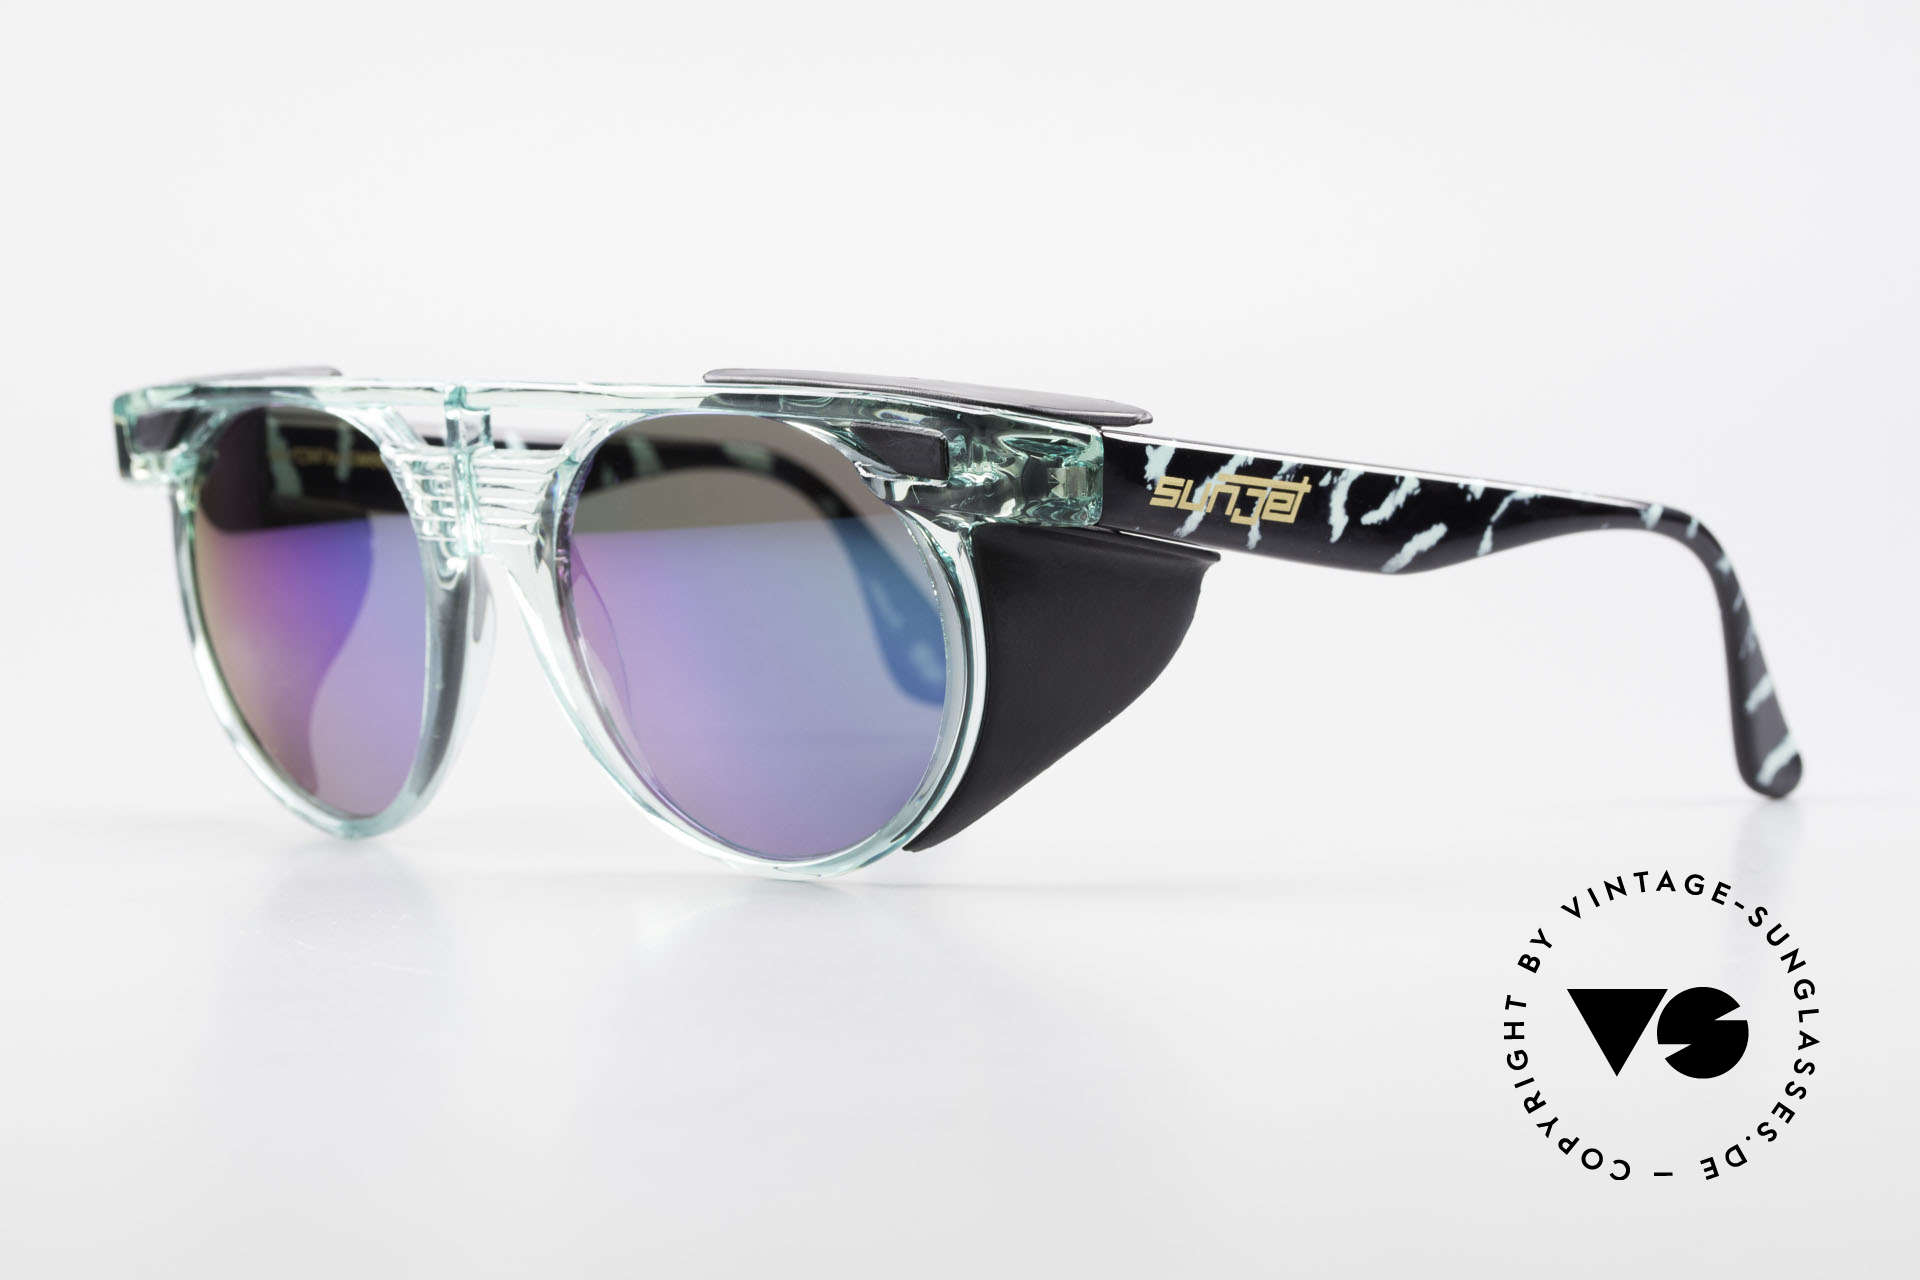 Carrera 5251 Round Sunglasses Steampunk, called as 'steampunk sunglasses' or 'industrial design', Made for Men and Women